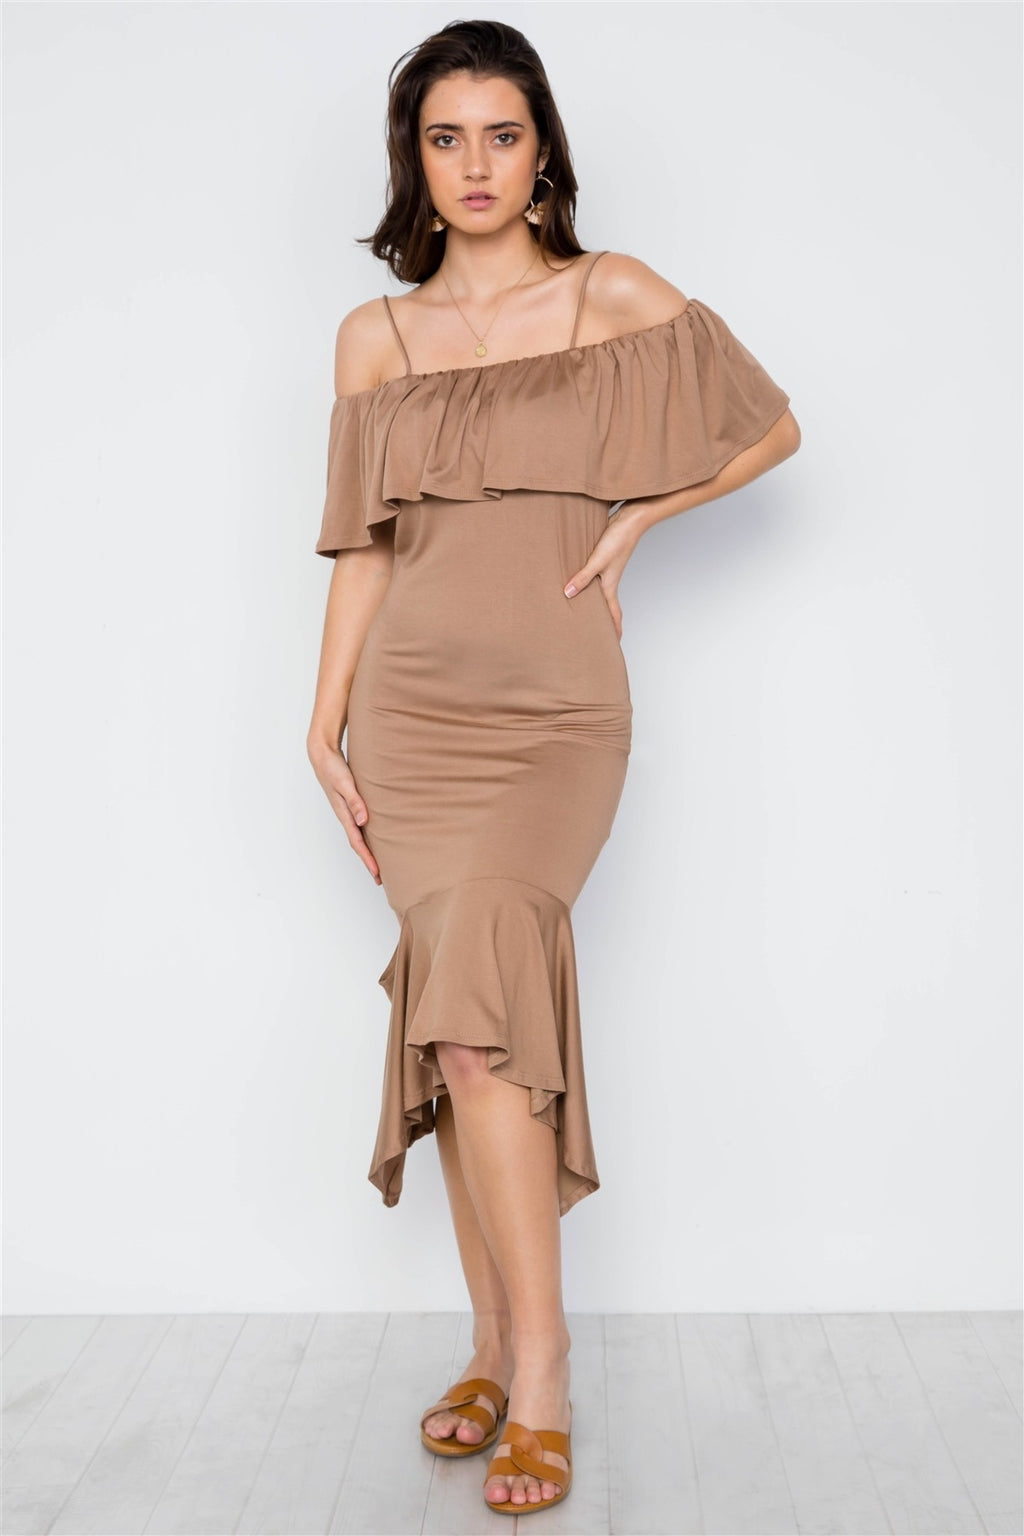 Cami Flounce Cut Out Dress - Miranda's Paparazzi Style